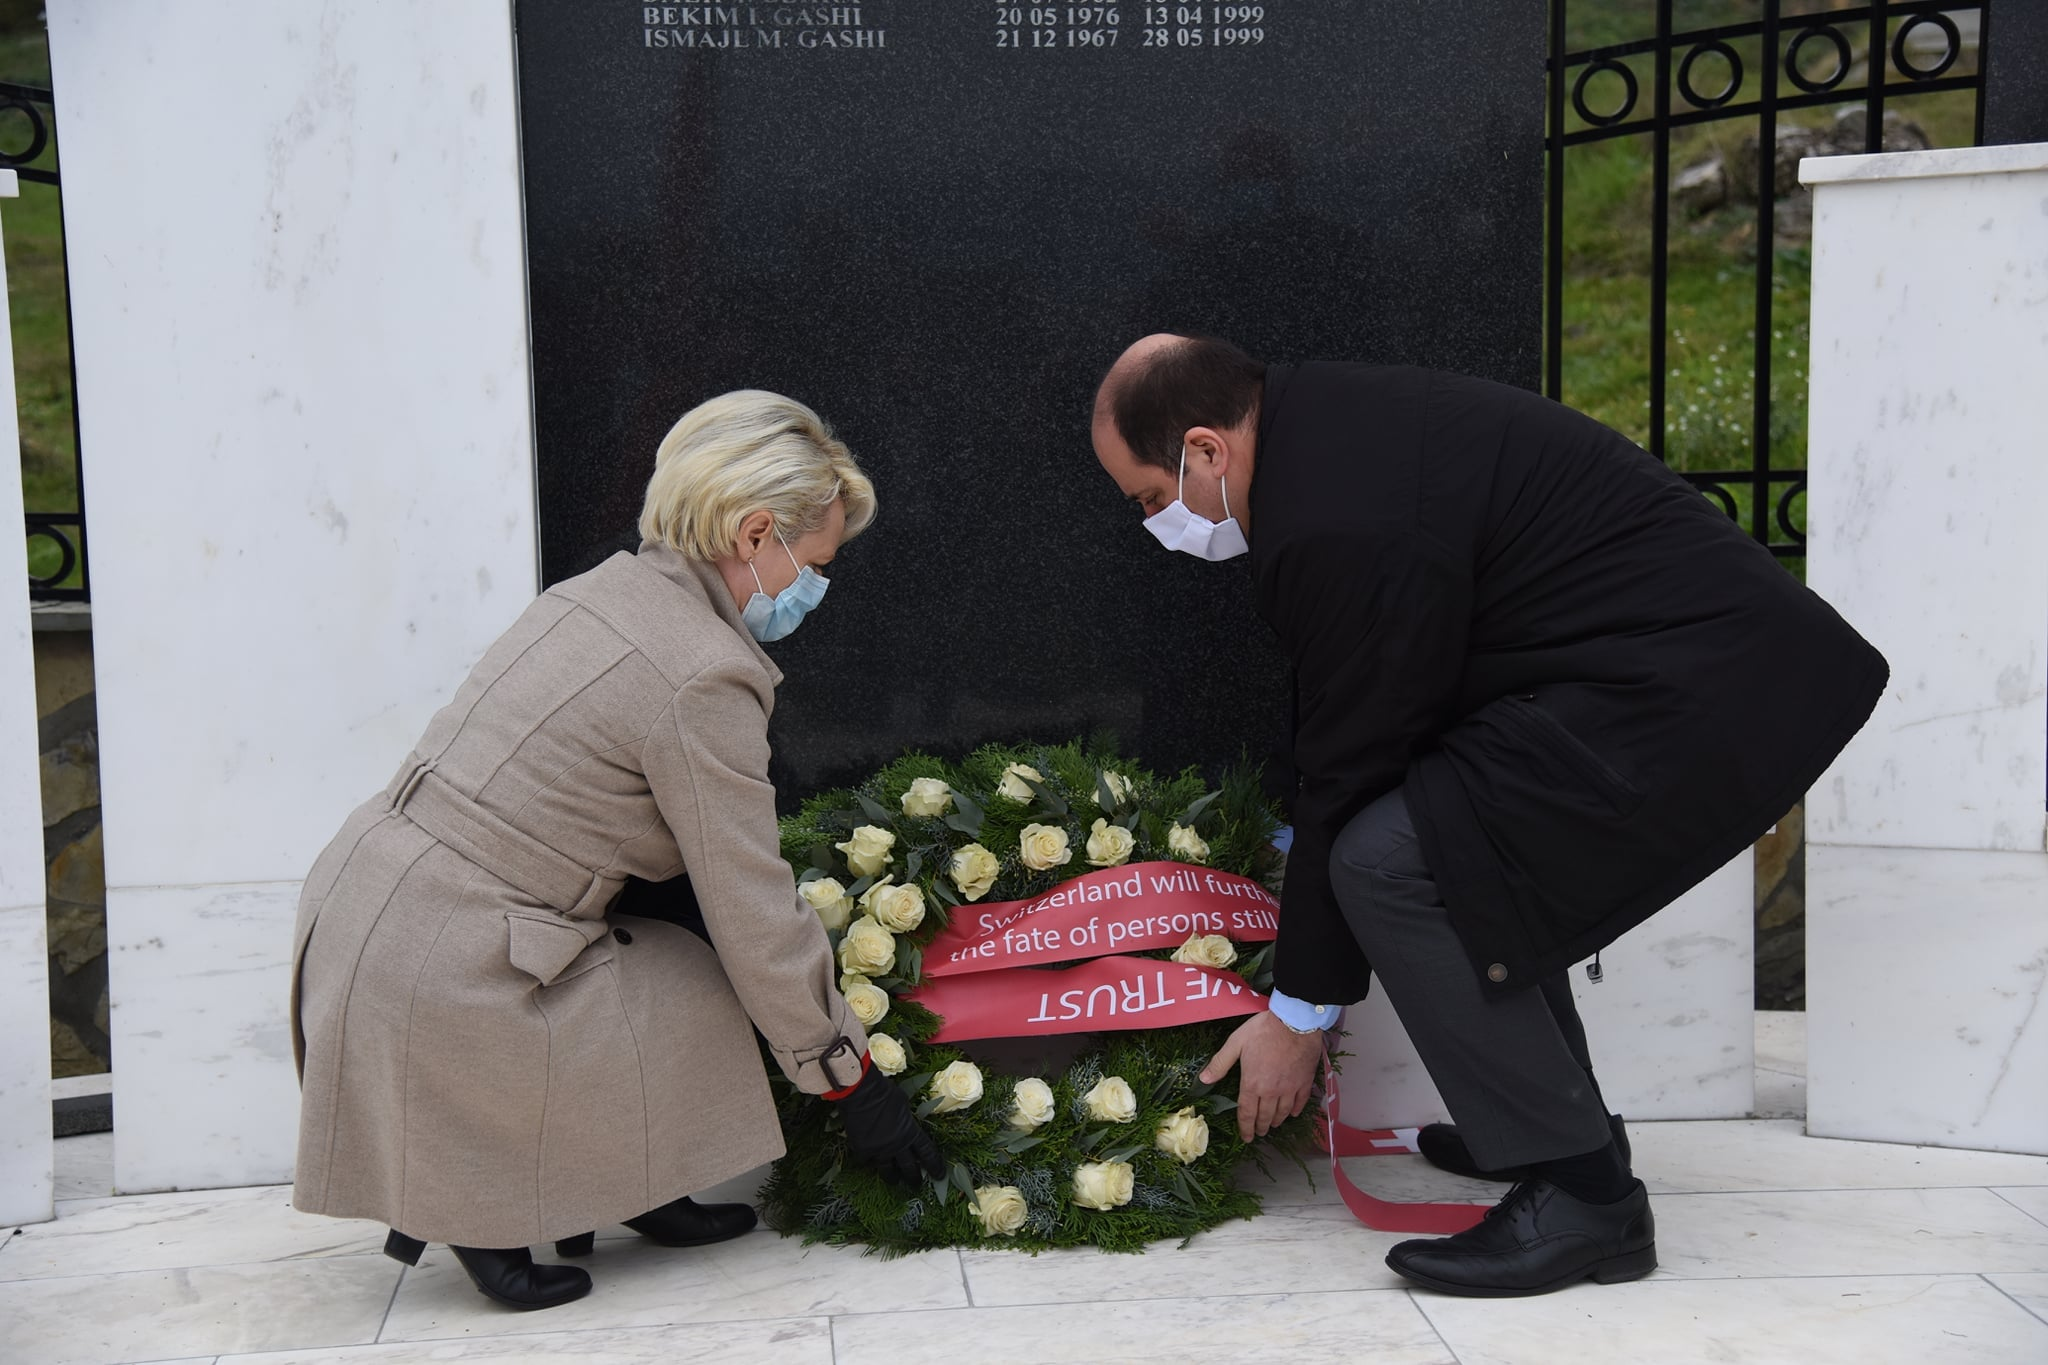 Swiss President of Parliament Visits One of the Most War Torn Villages in Kosovo